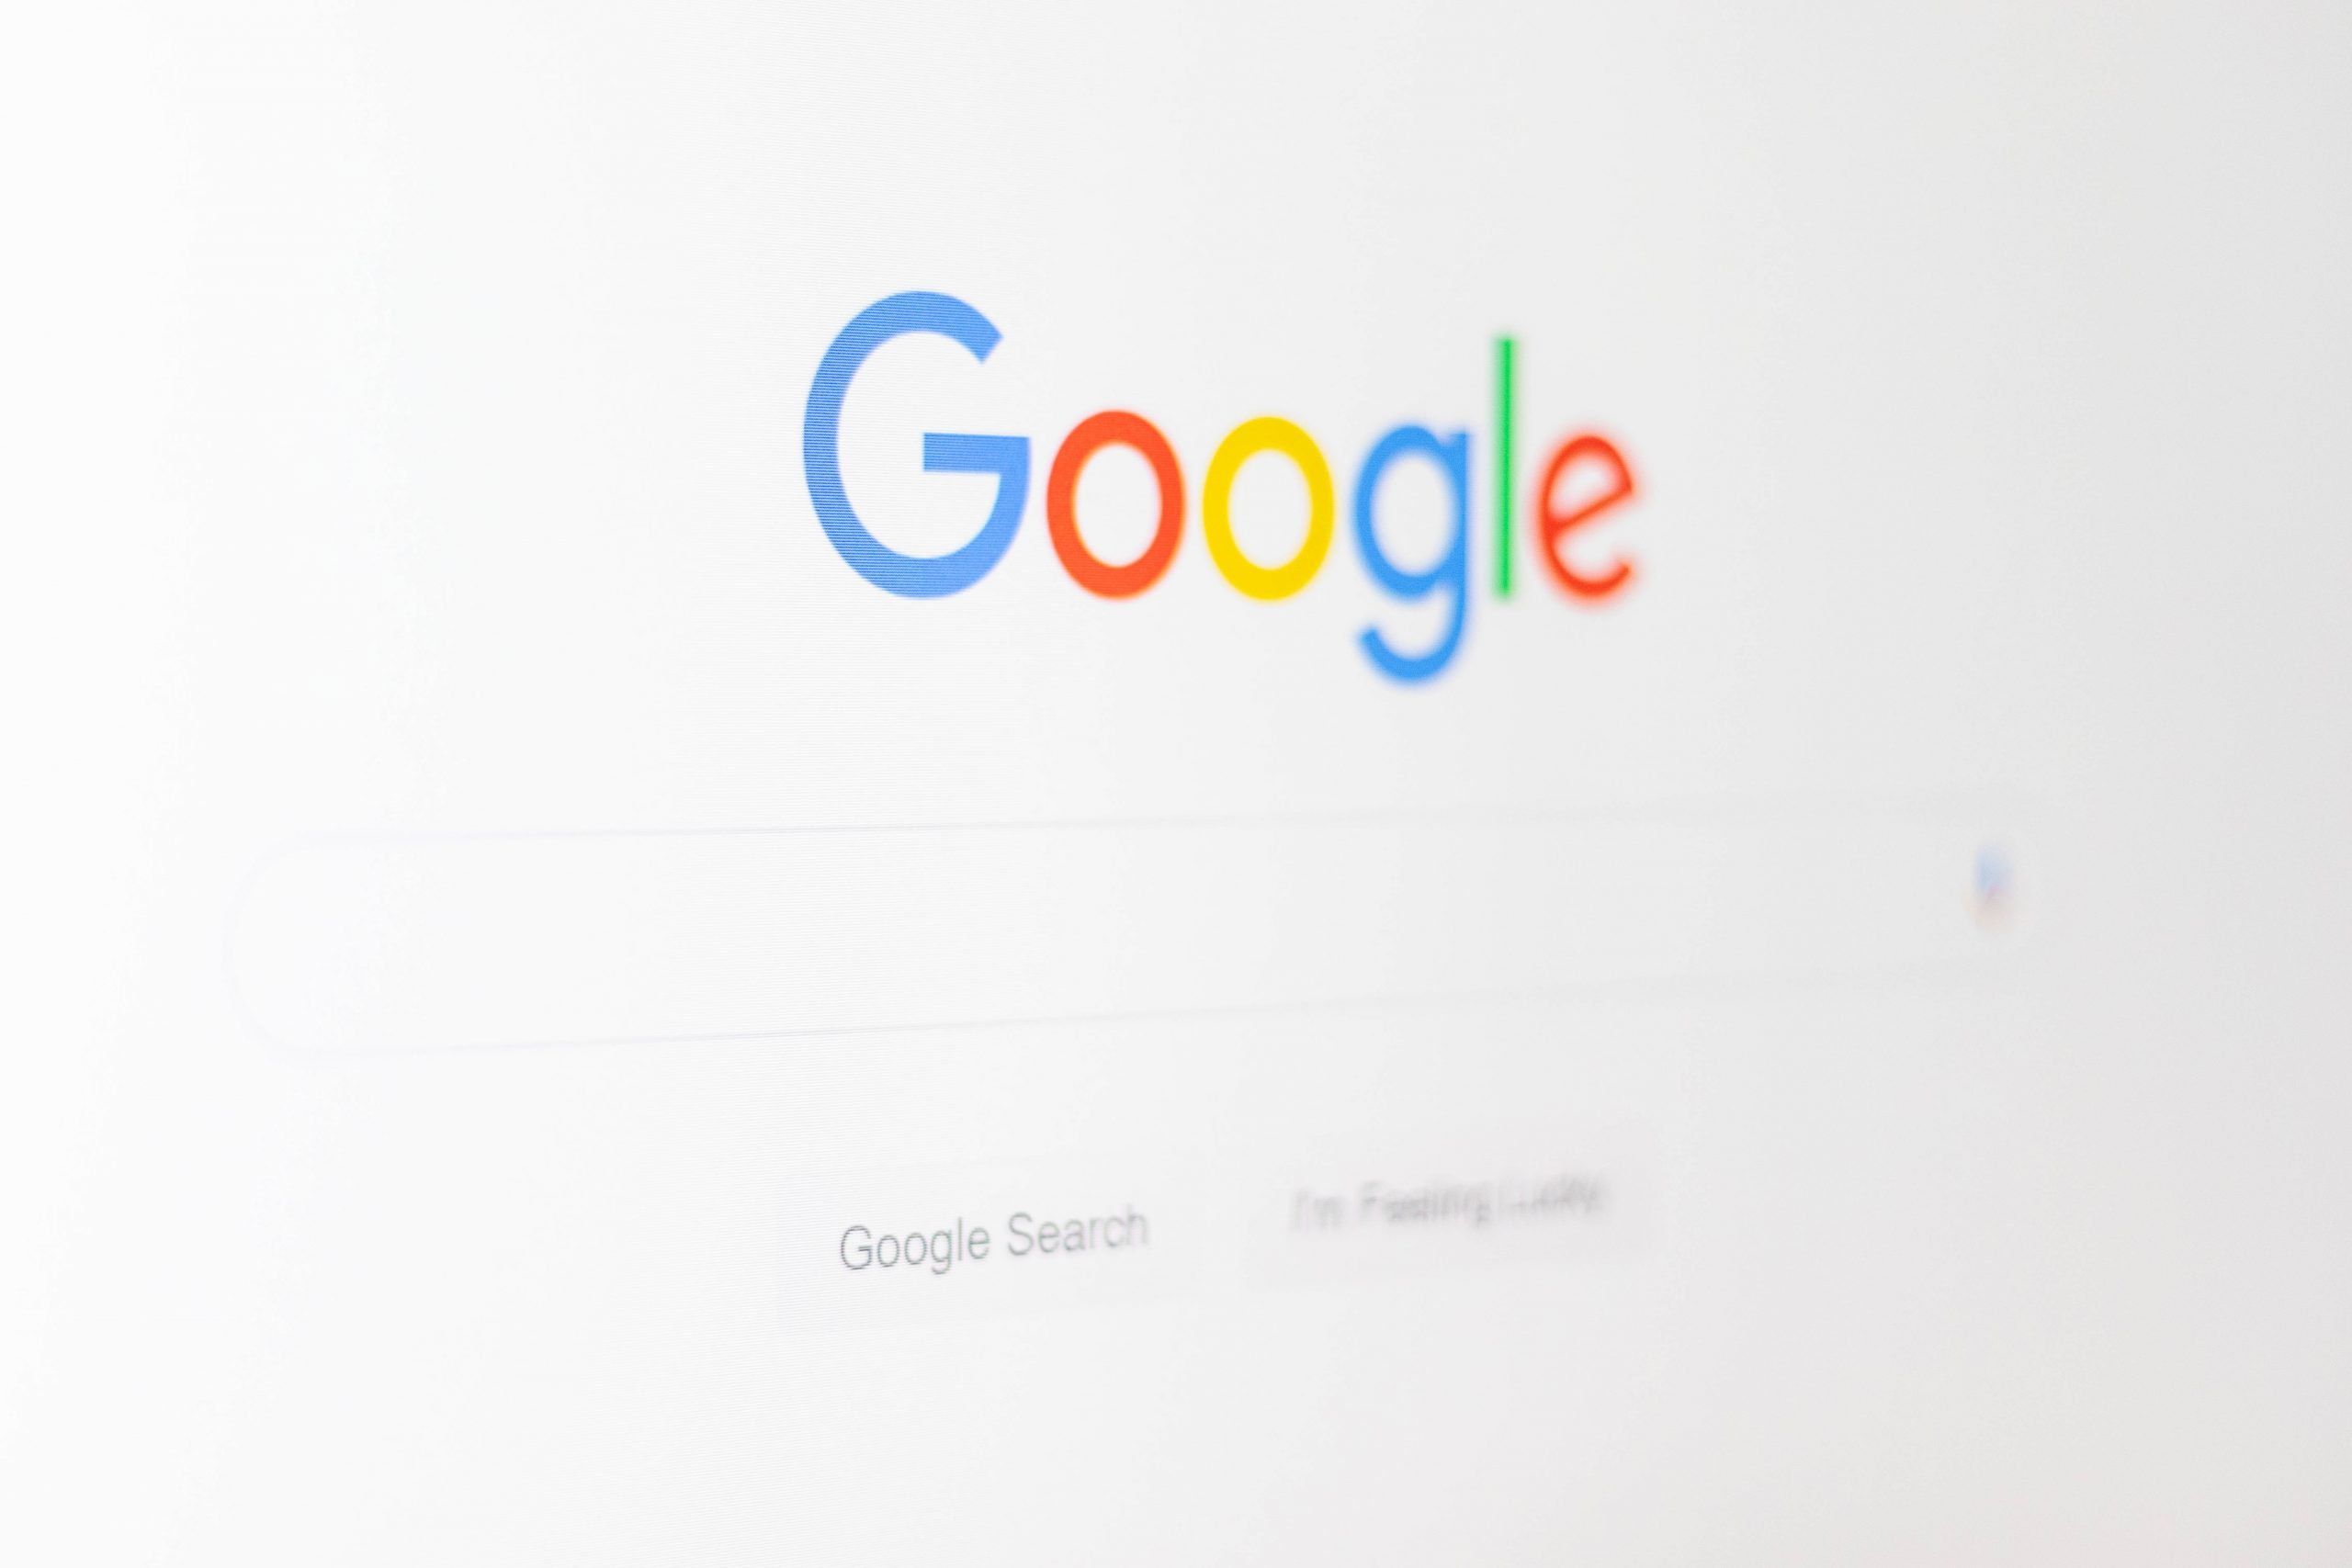 Google logo screengrab